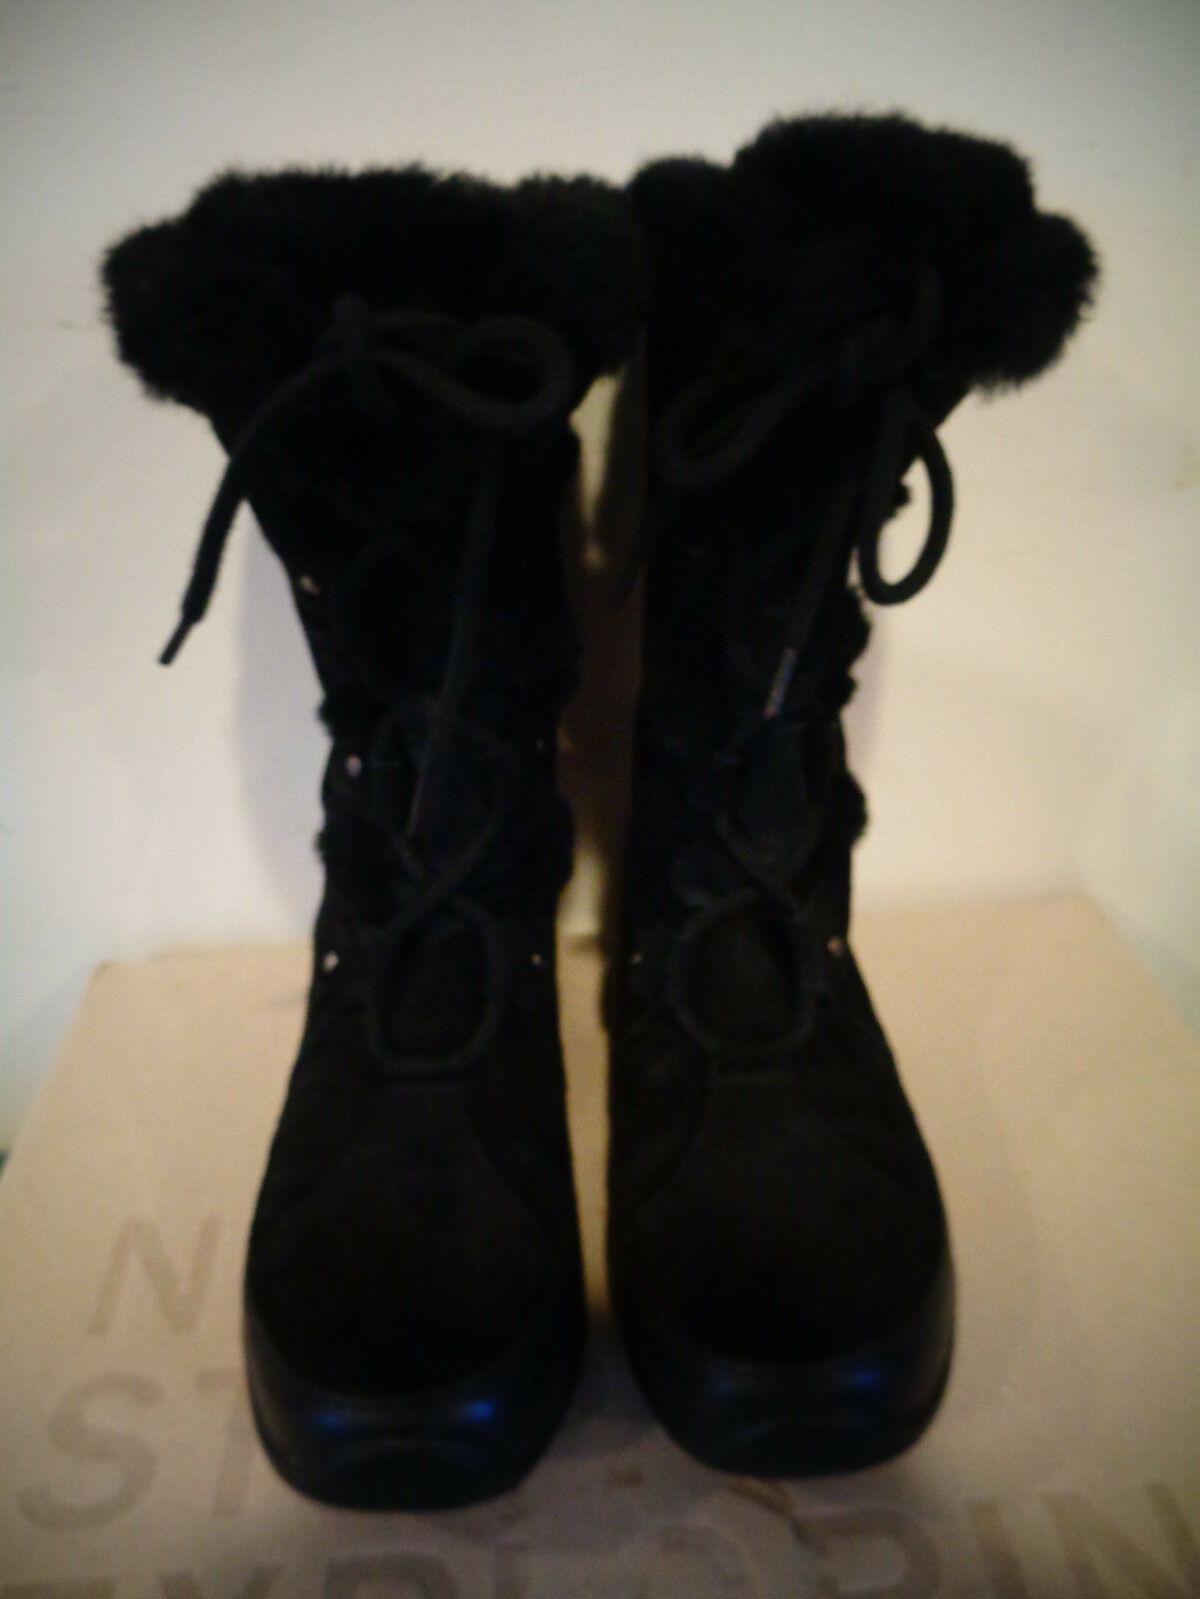 NORTH FACE BLACK SUEDE ABBY III 200 GRAM PRIMALOFT WATERPROOF BOOTS SIZE 7